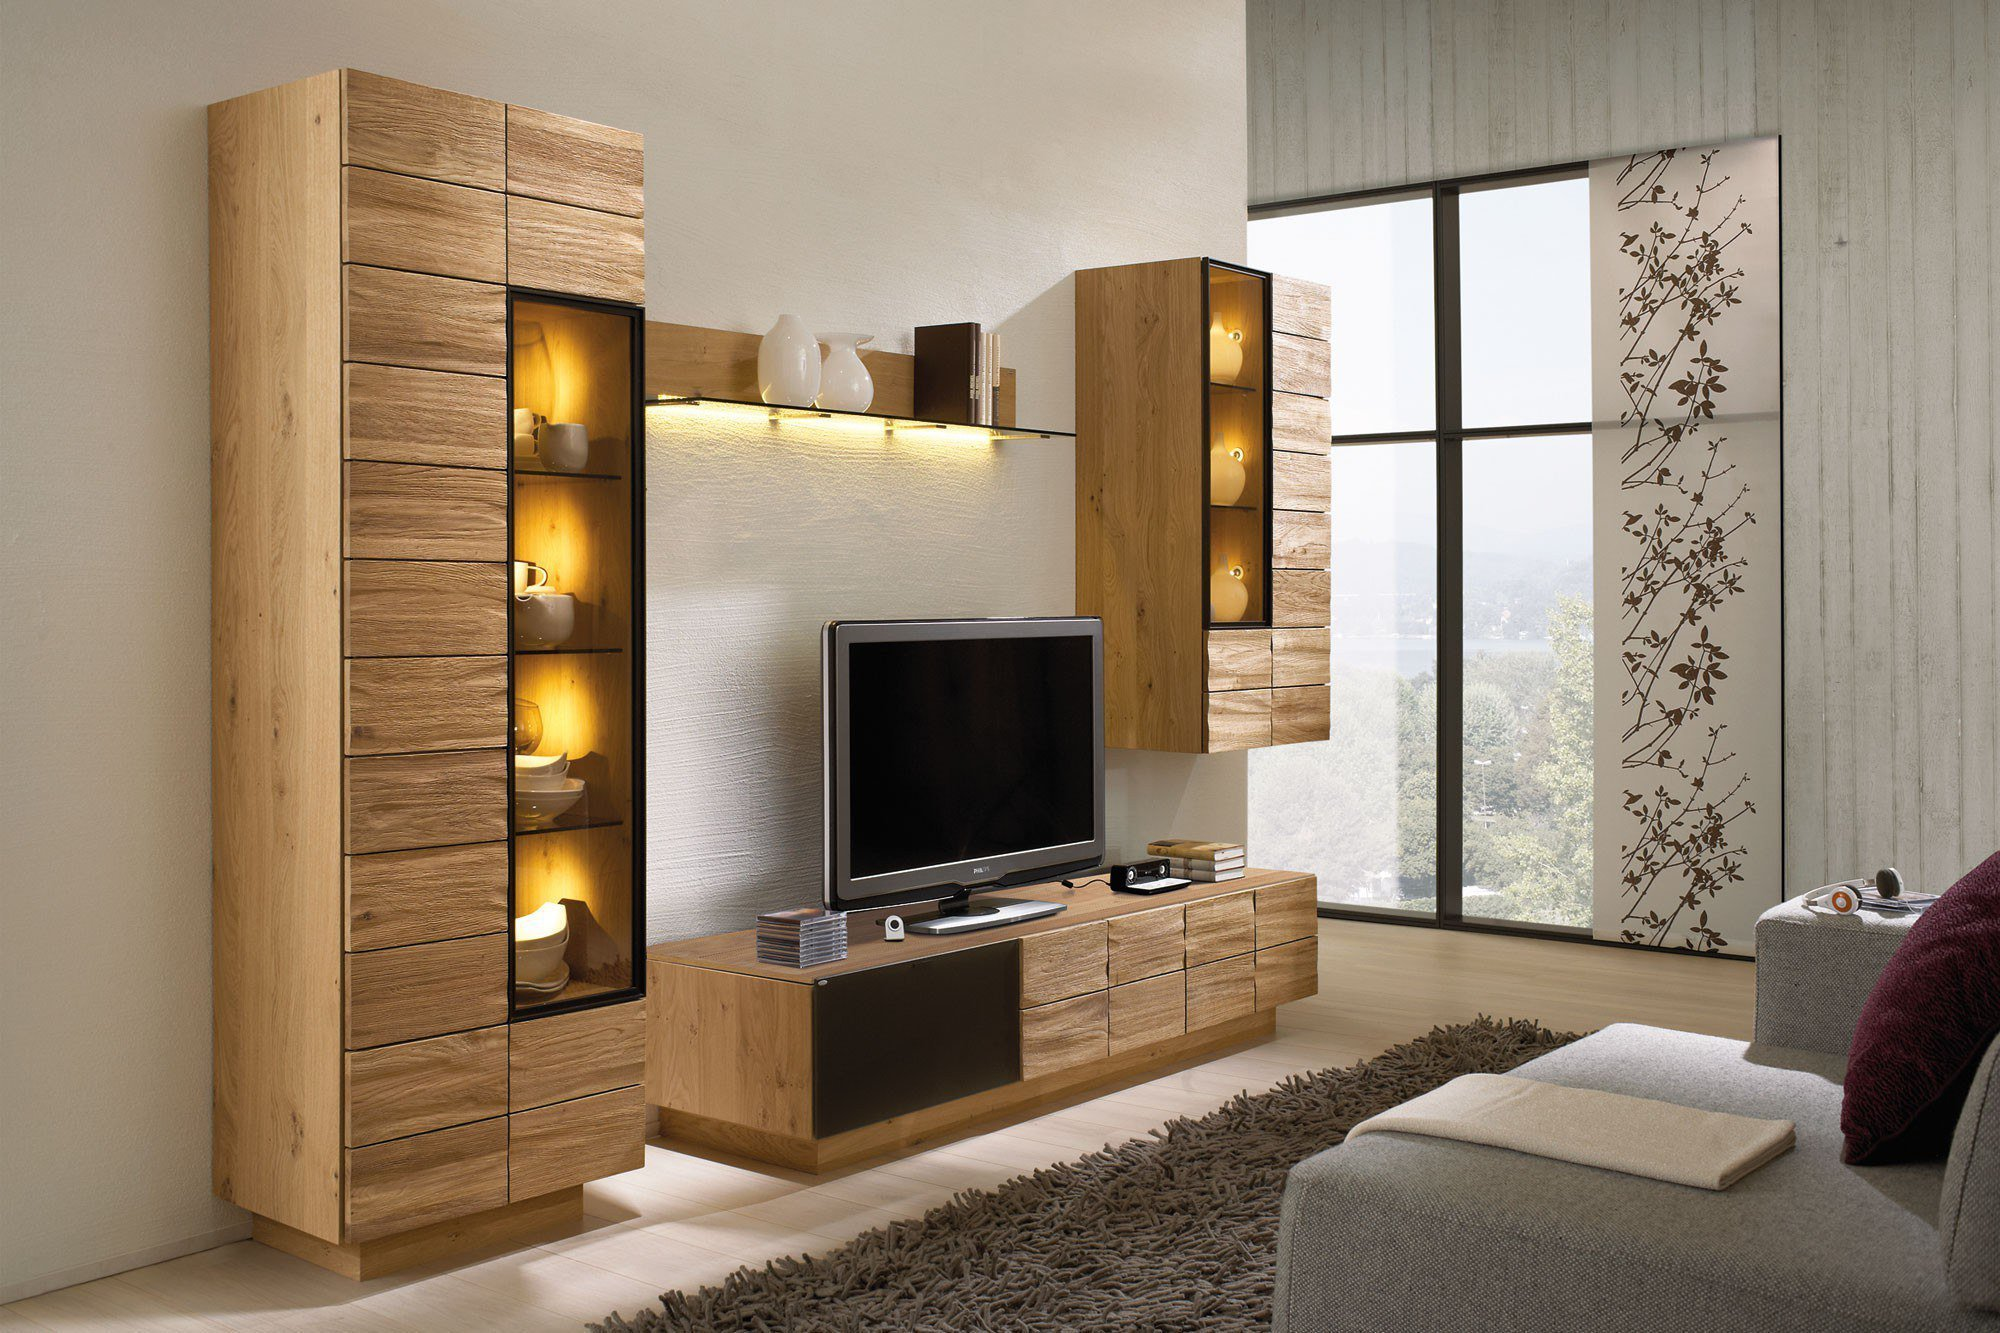 voglauer wohnwand v montana 173 wildeiche braun m bel letz ihr online shop. Black Bedroom Furniture Sets. Home Design Ideas